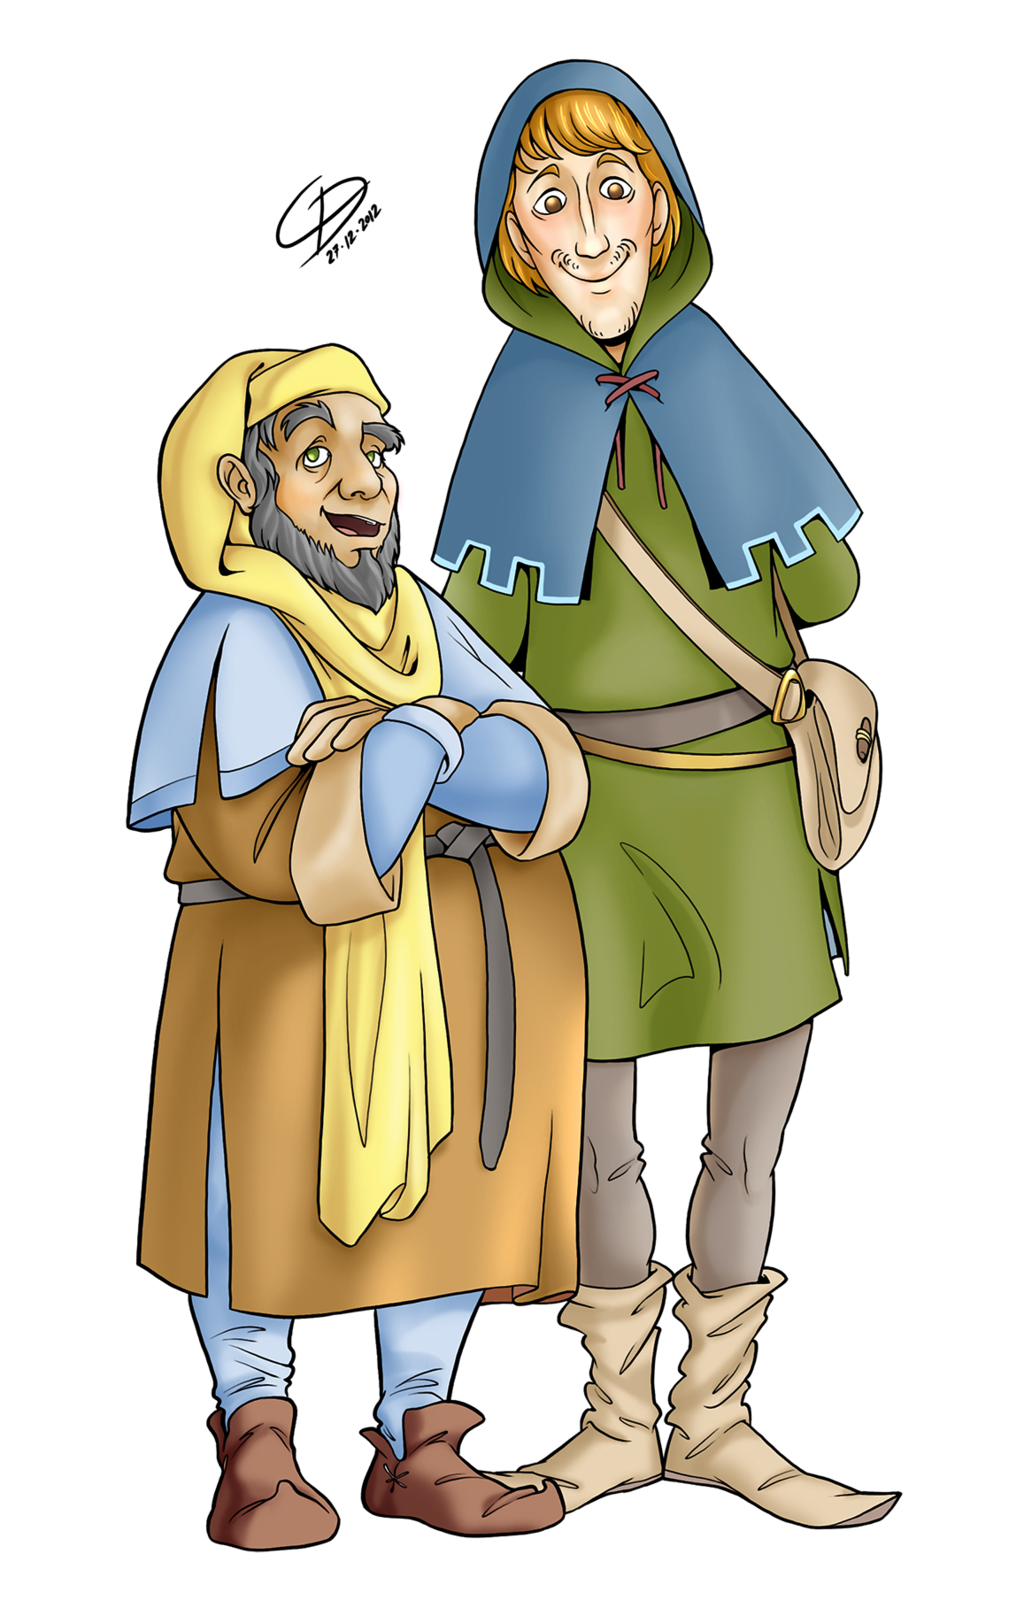 Middle ages people cartoon. Cup clipart medieval